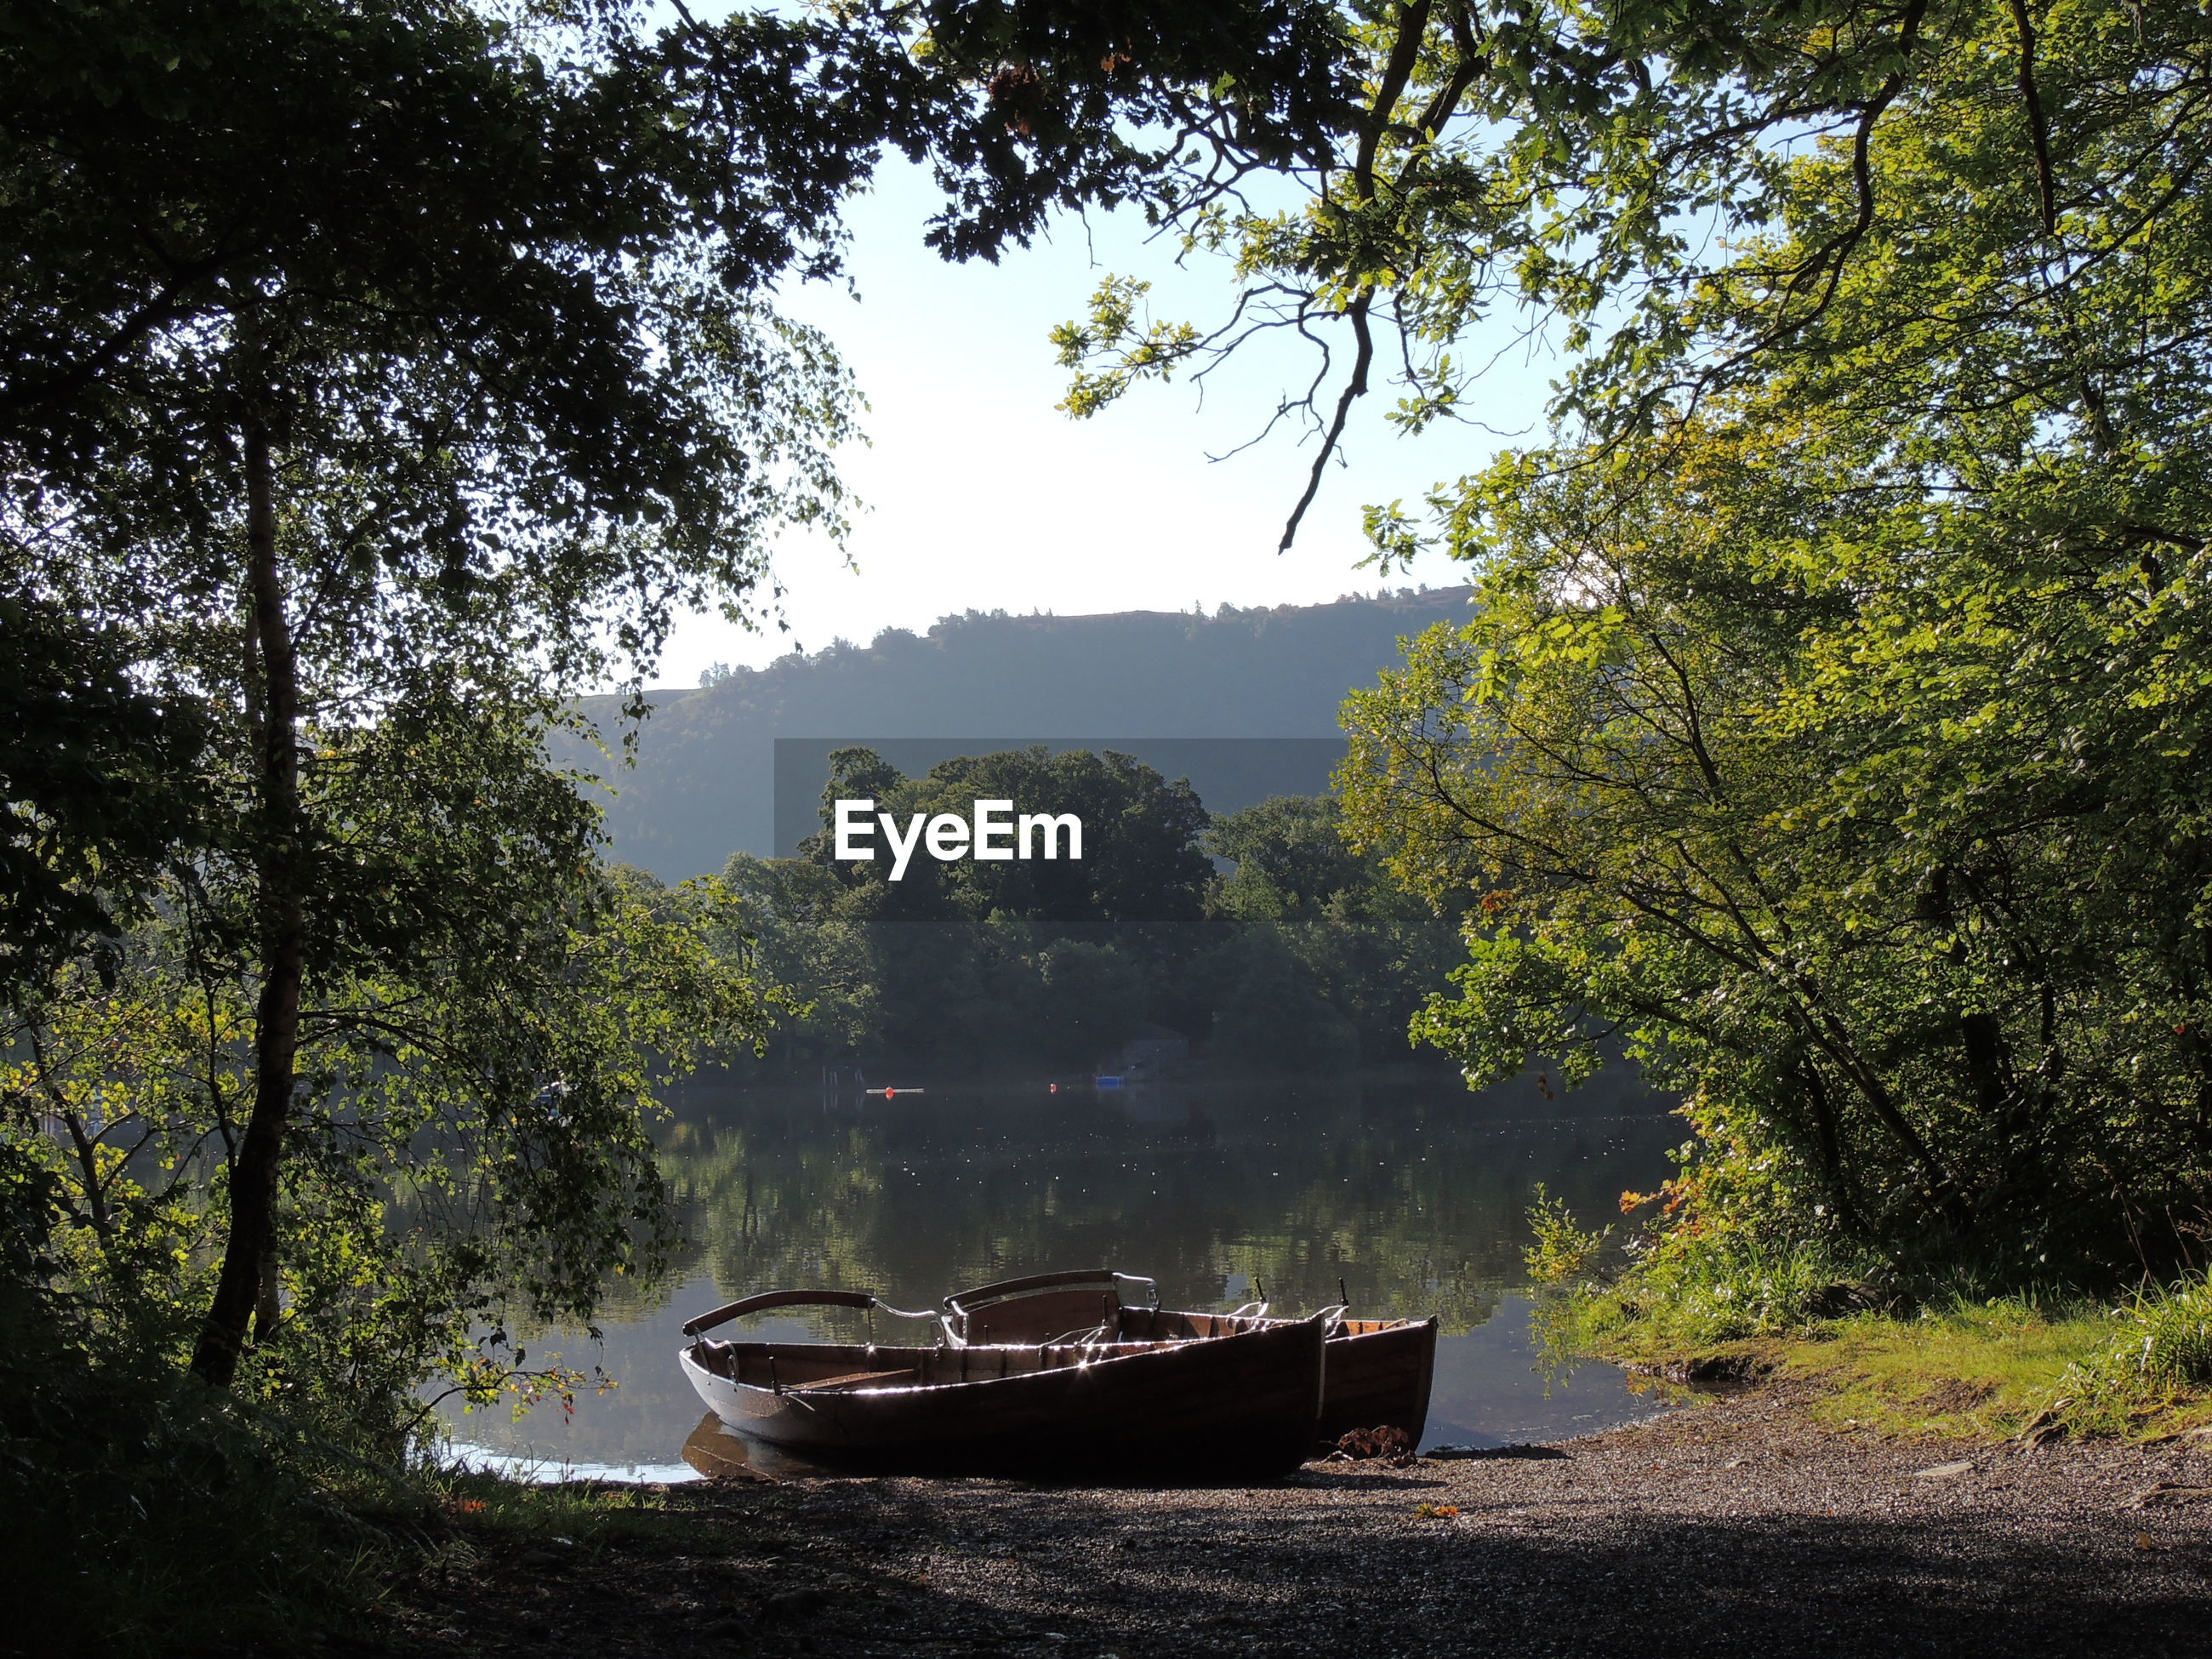 BOAT MOORED IN RIVER AGAINST TREES